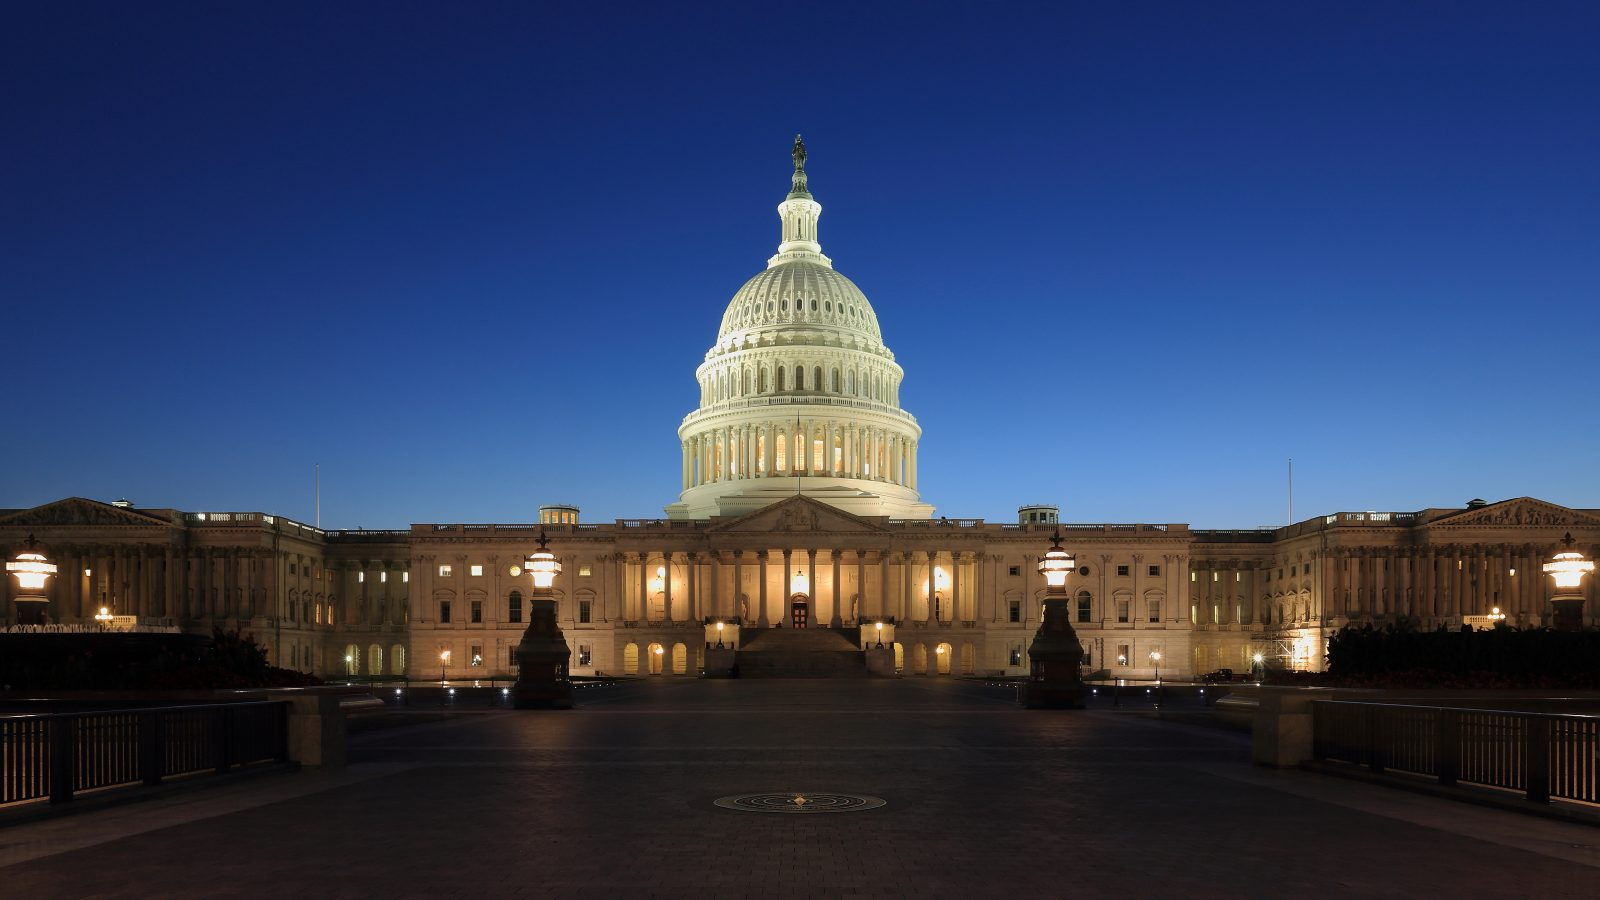 The United States Capitol building at dusk